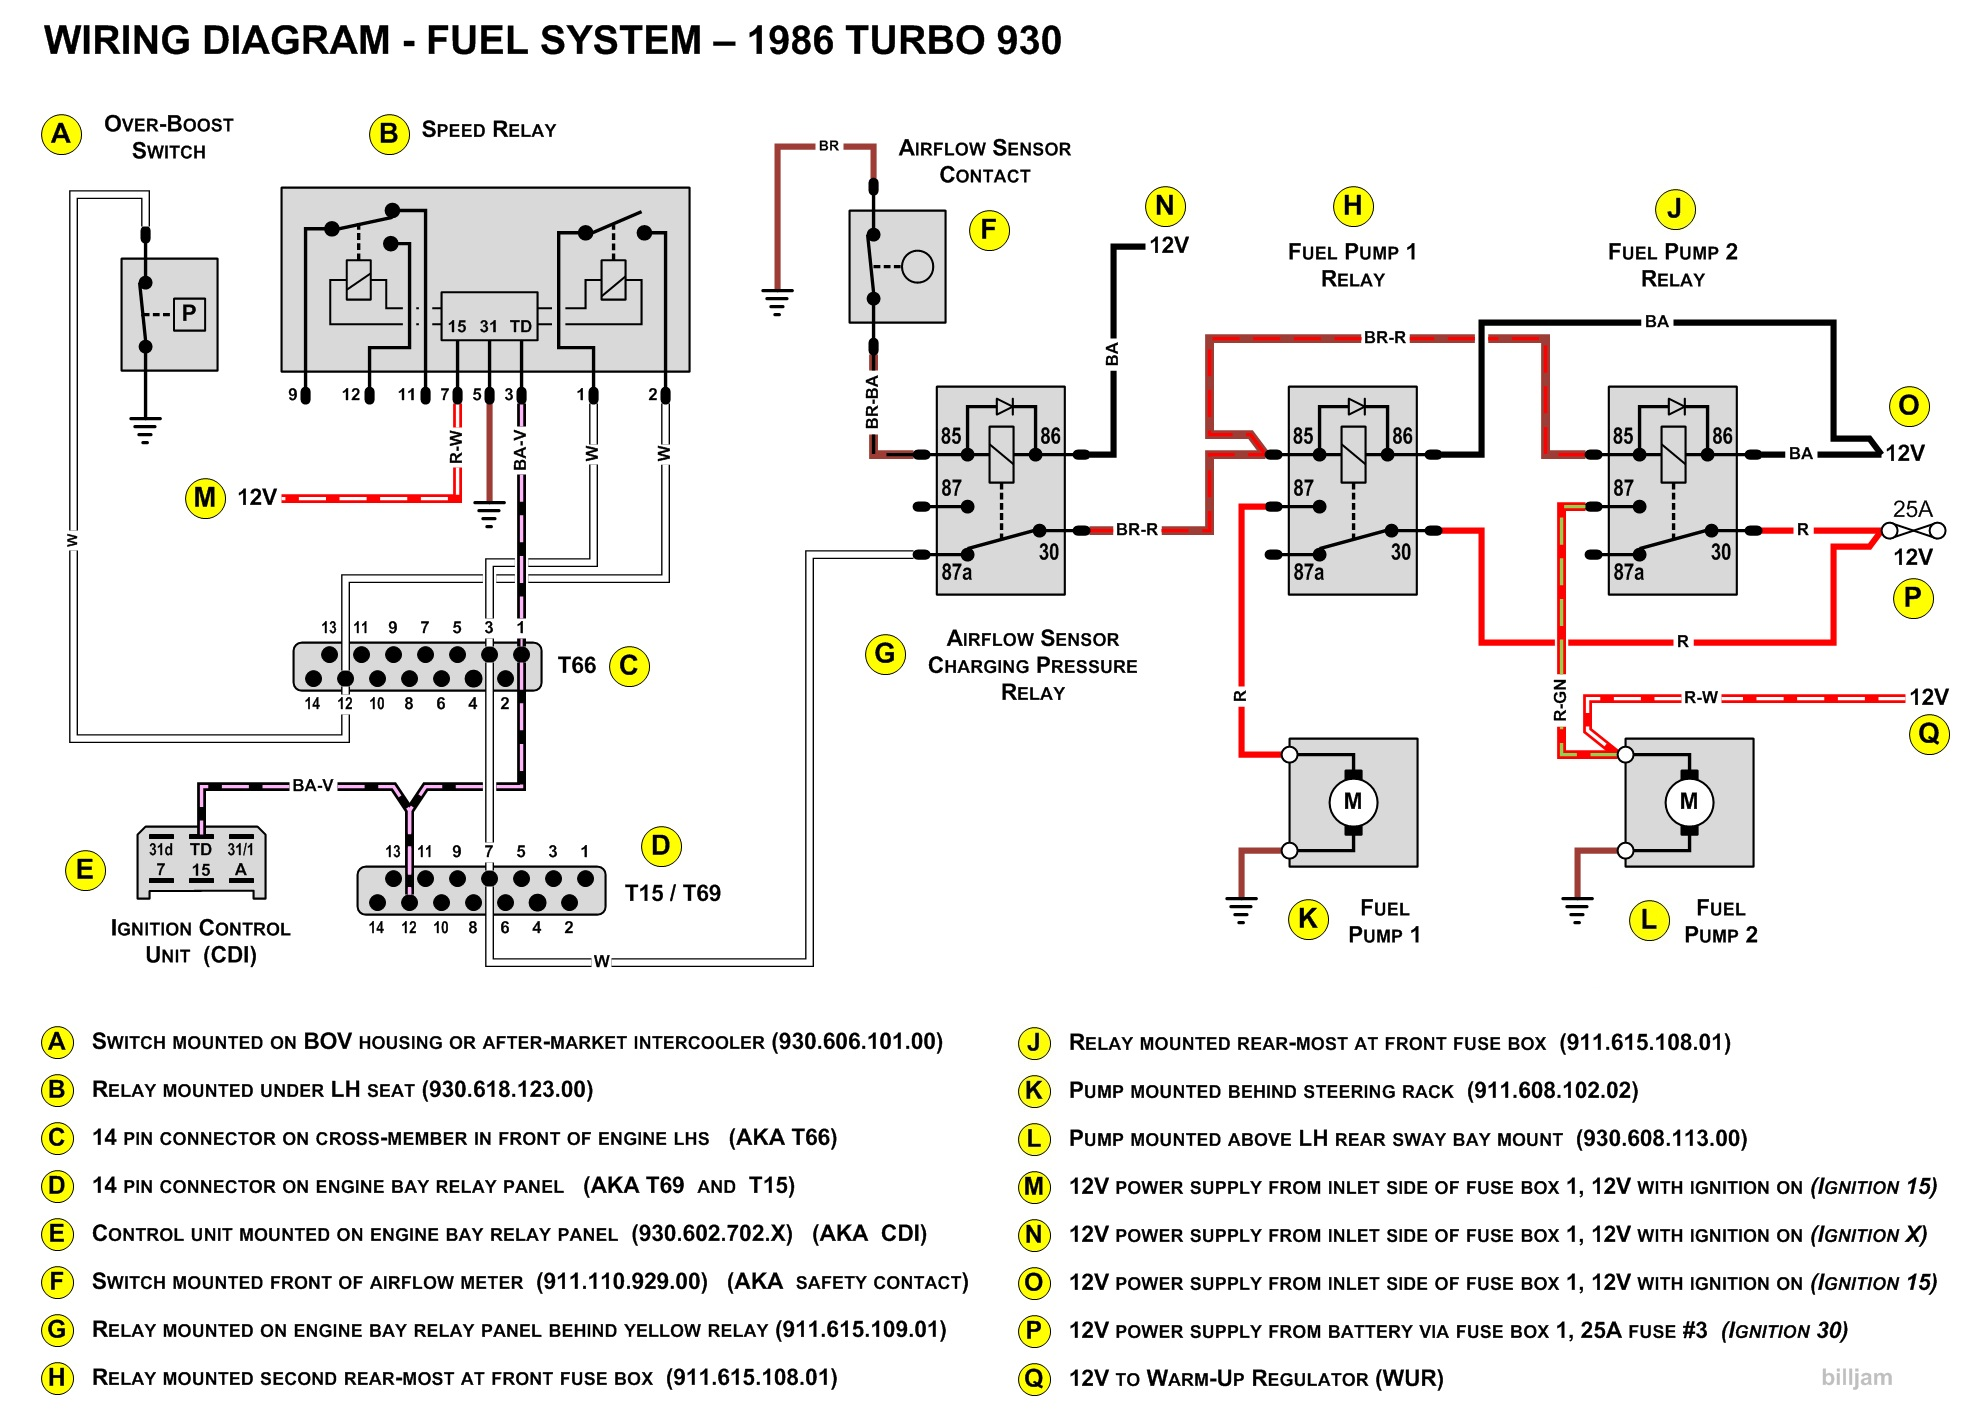 86 porsche 930 fuel system wiring diagram 1986 porsche 911 wiring diagram dolgular com 1985 porsche 911 wiring diagram at panicattacktreatment.co